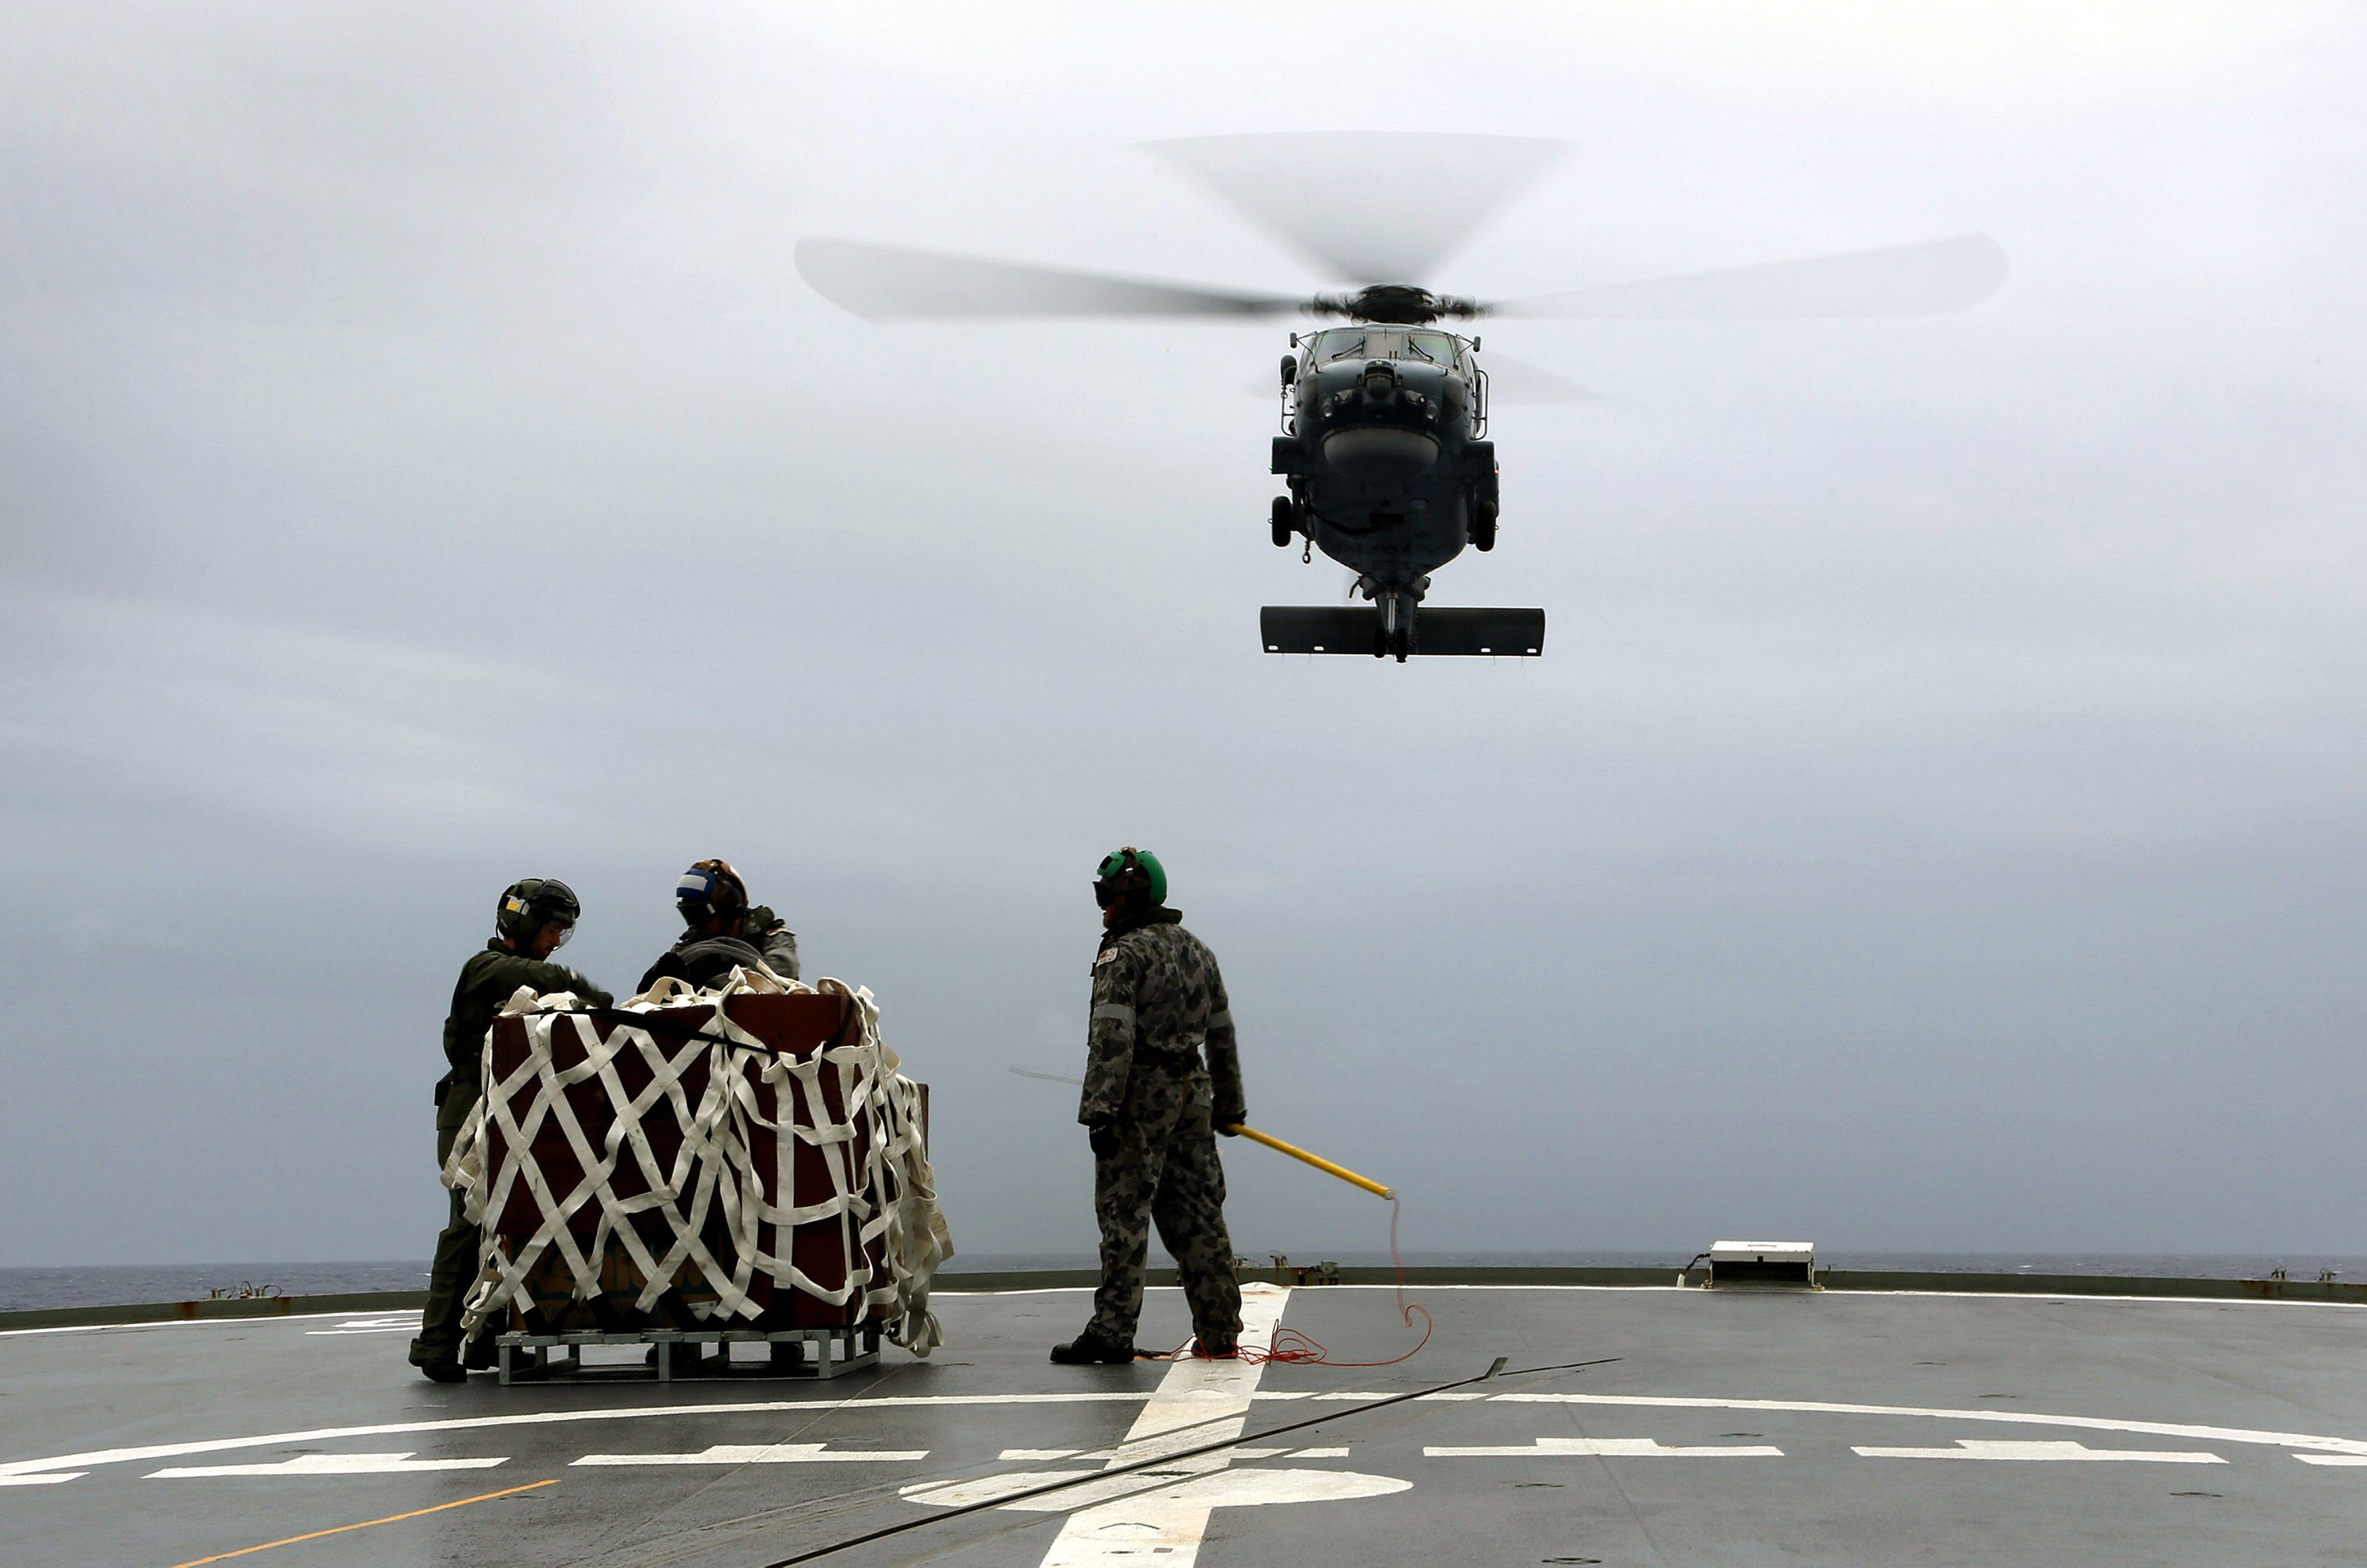 A Seahawk helicopter approaches the flight deck of Australian navy ship H.M.A.S. Toowoomba during a search for the missing Malaysian Airlines Flight 370